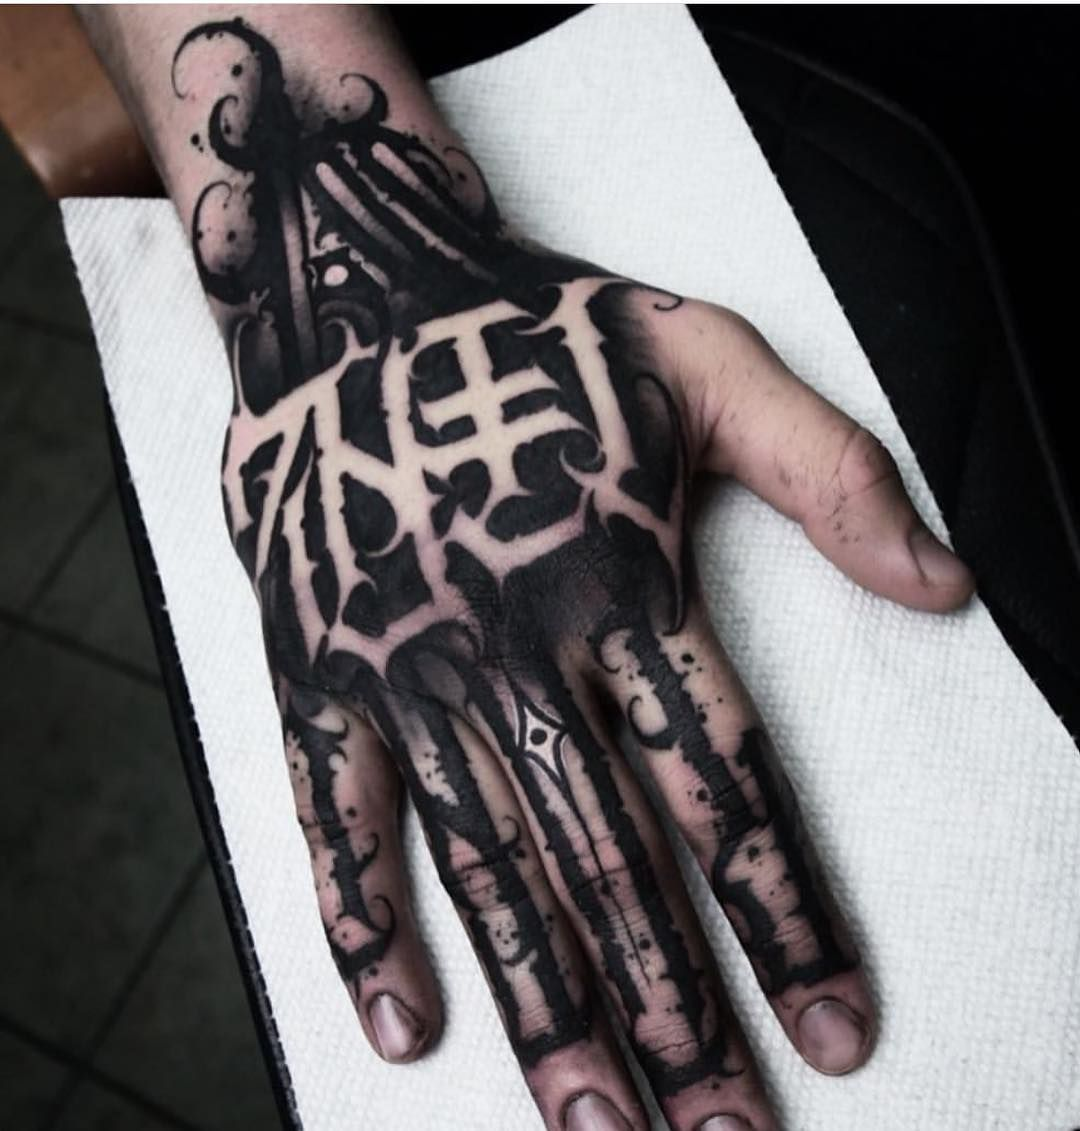 Sick Hand Tattoo Done By The Artist Abis One Hand Tattoos Hand Tattoos For Guys Full Hand Tattoo